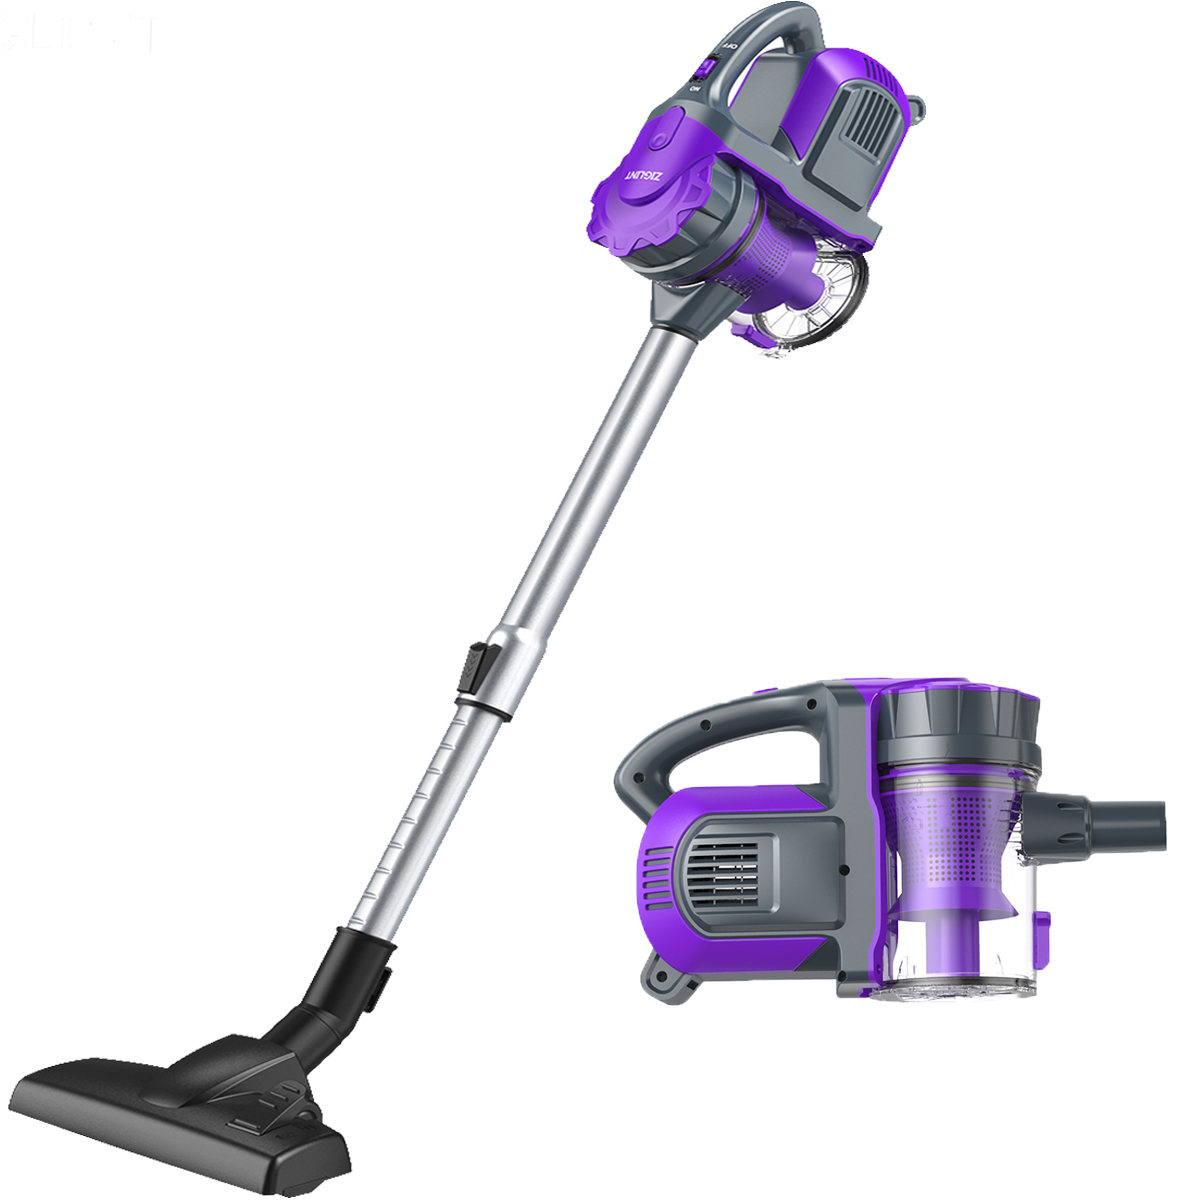 Cordless Vacuum, ZIGLINT 2-in-1 Cordless Vacuum Cleaner Handheld on Sale with Powerful Suction Re-chargeble Li-Battery for Pet Hair Car Carpet Hardwood Floor Sofa